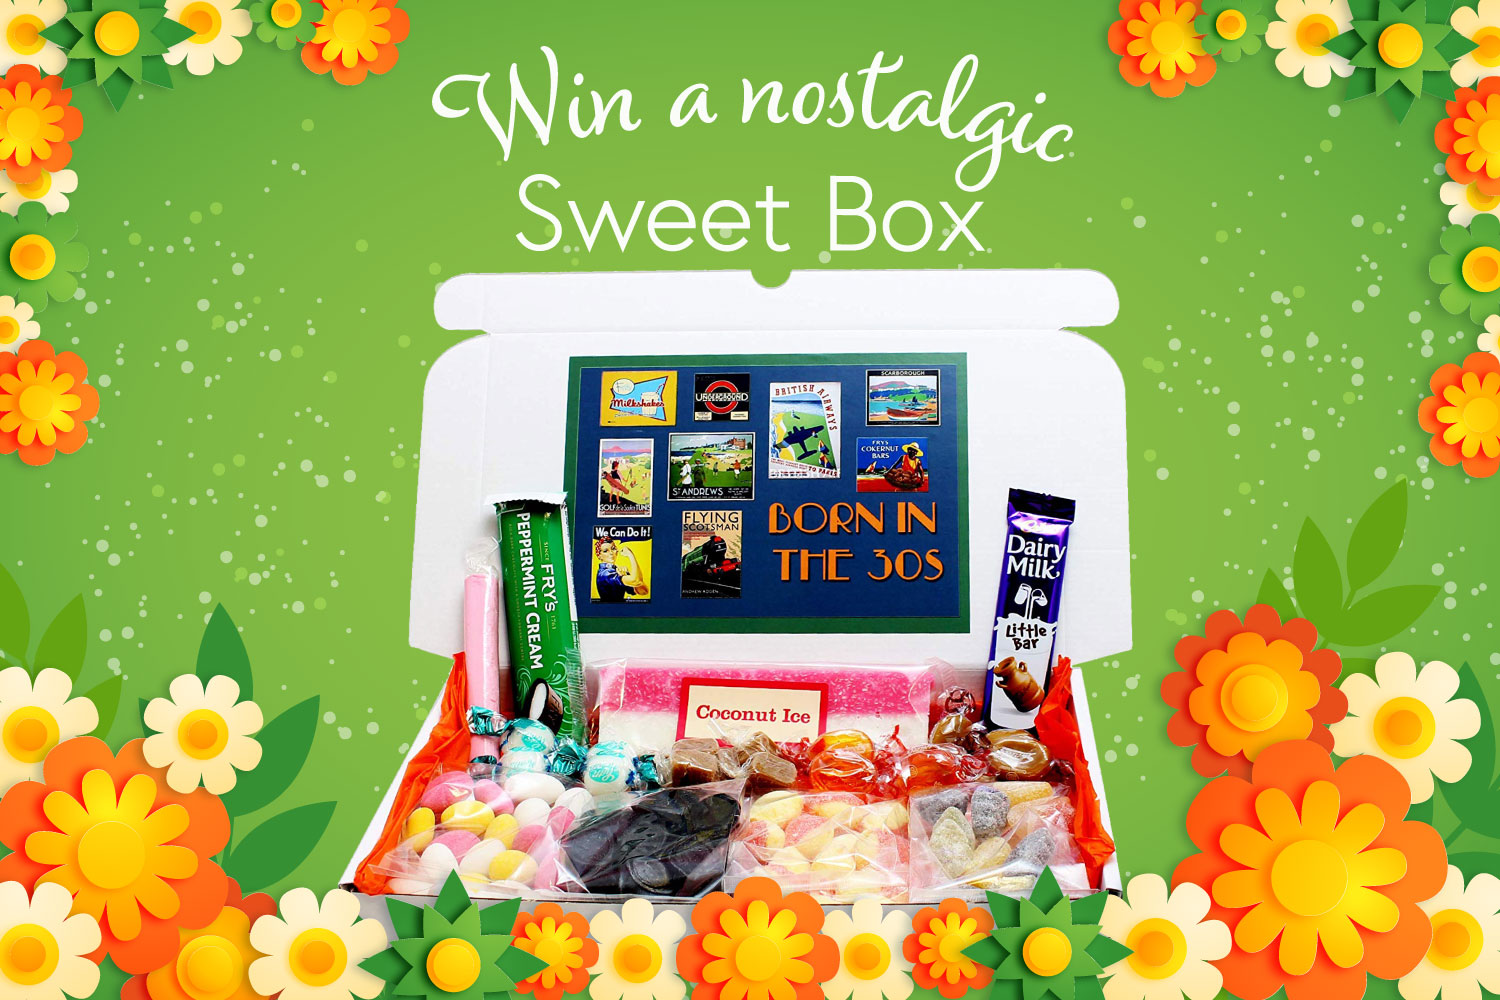 Win a nostalgic sweet box from oak tree